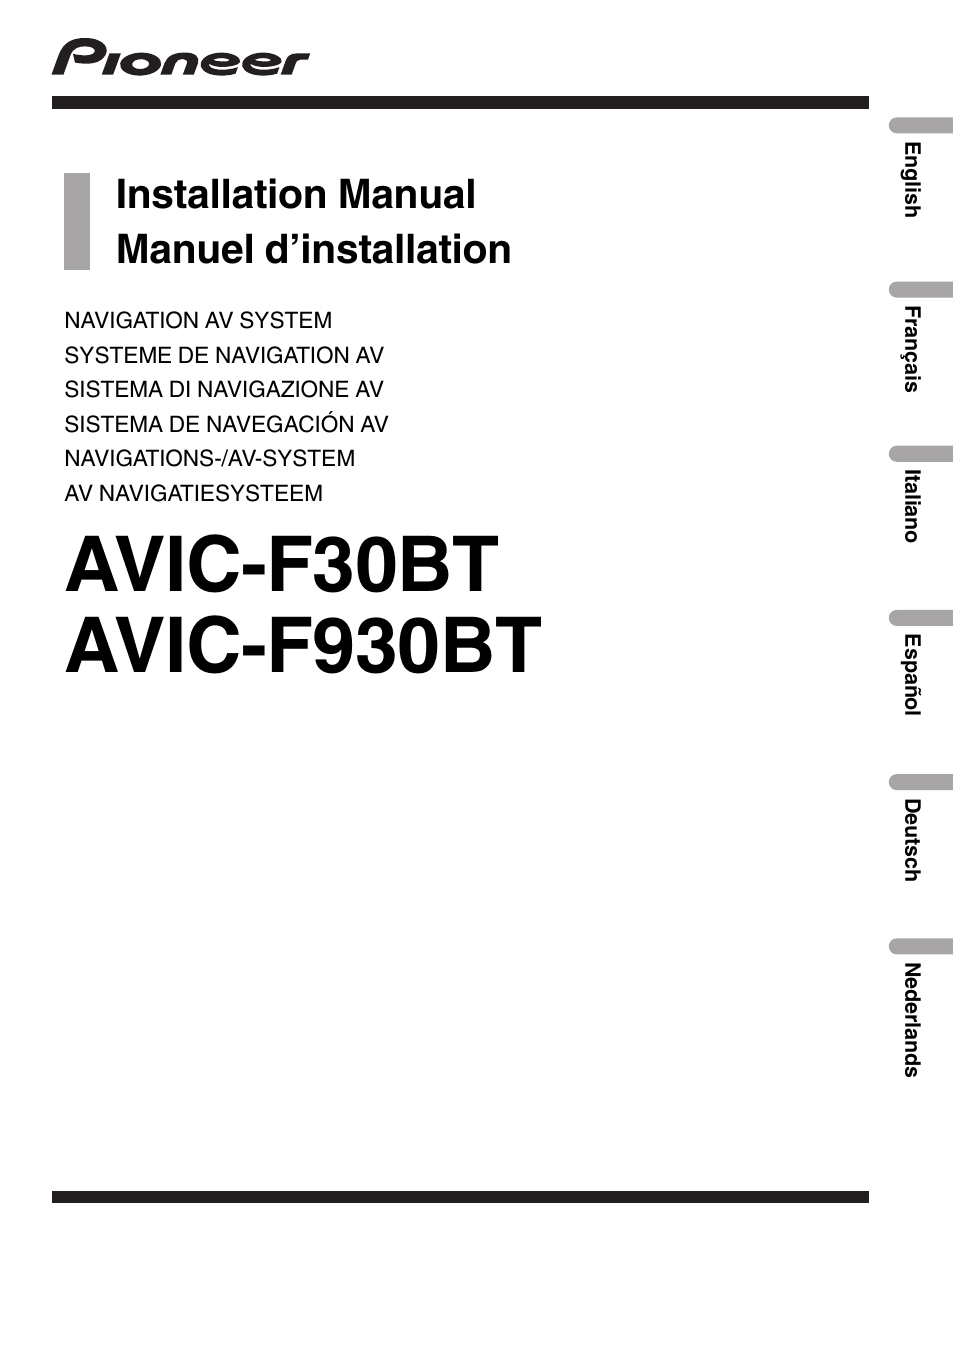 Uitgelezene Pioneer AVIC-F30BT User Manual | 172 pages | Also for: AVIC-F930BT CP-66